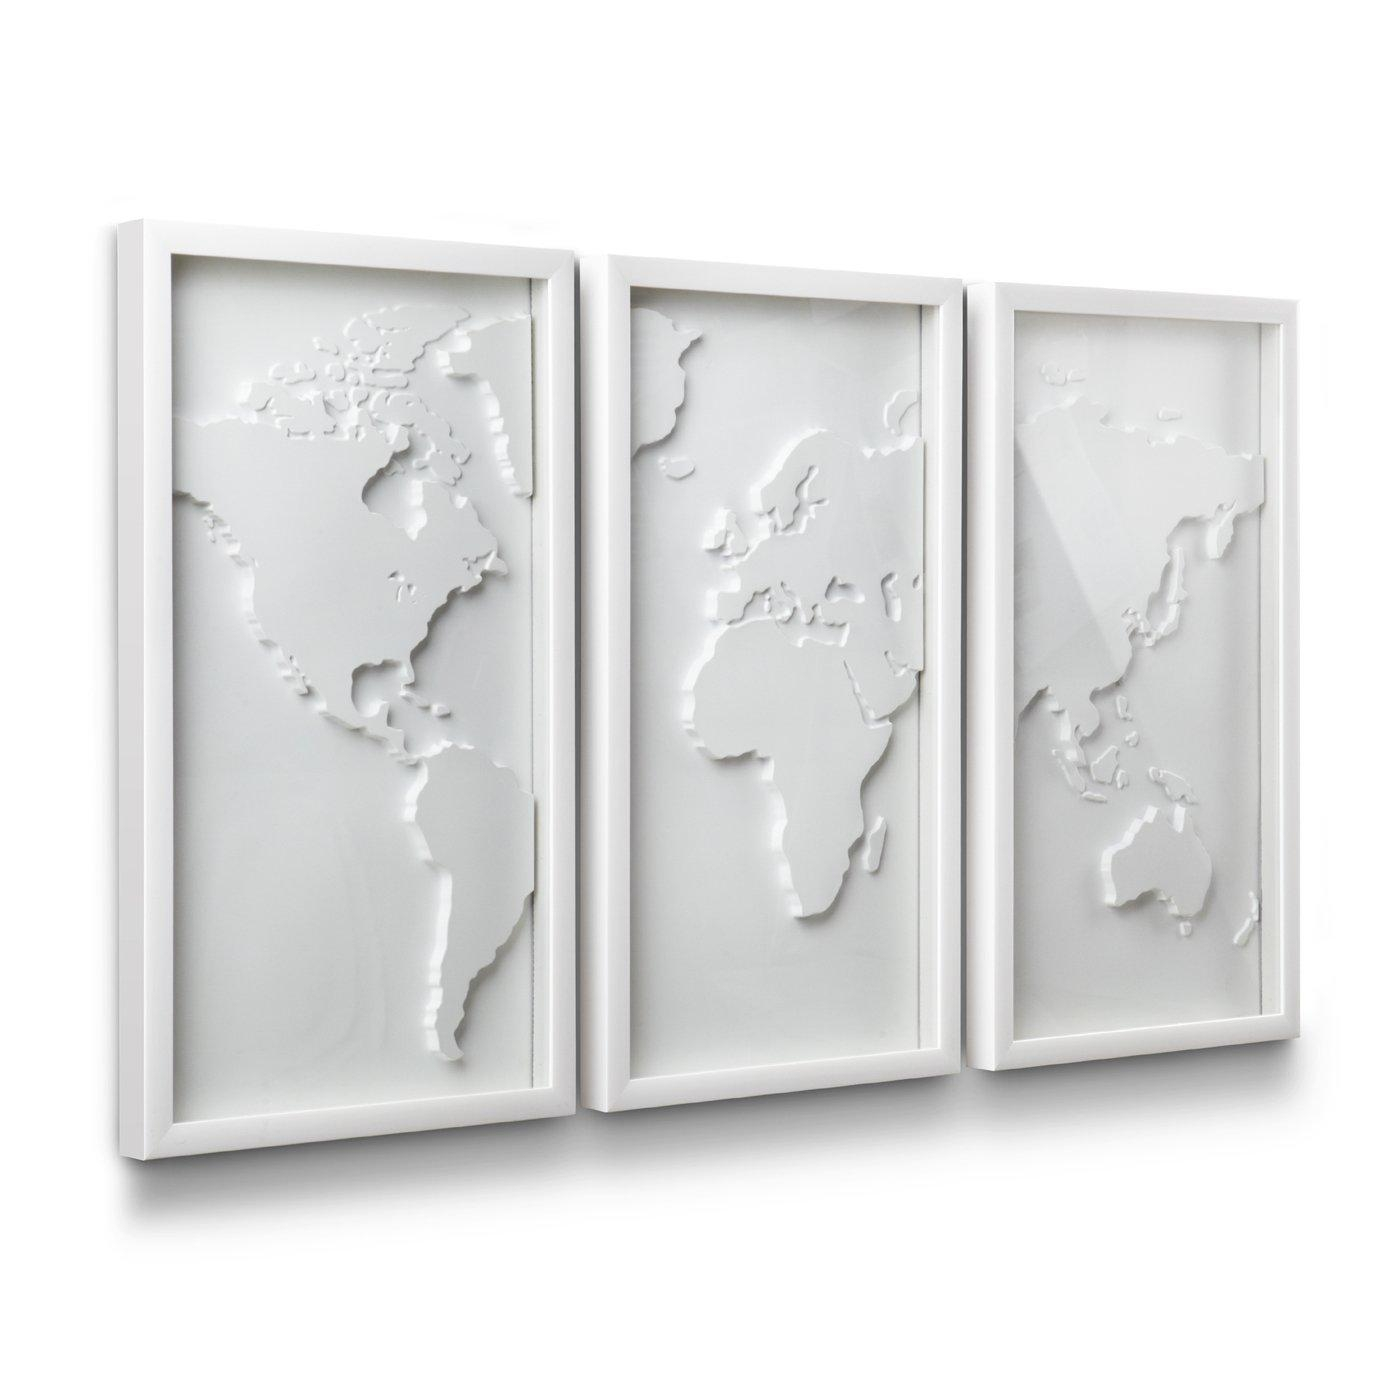 3D Wall Art | Wall Sculptures | Lowe's Canada With Regard To White 3D Wall Art (Image 4 of 20)